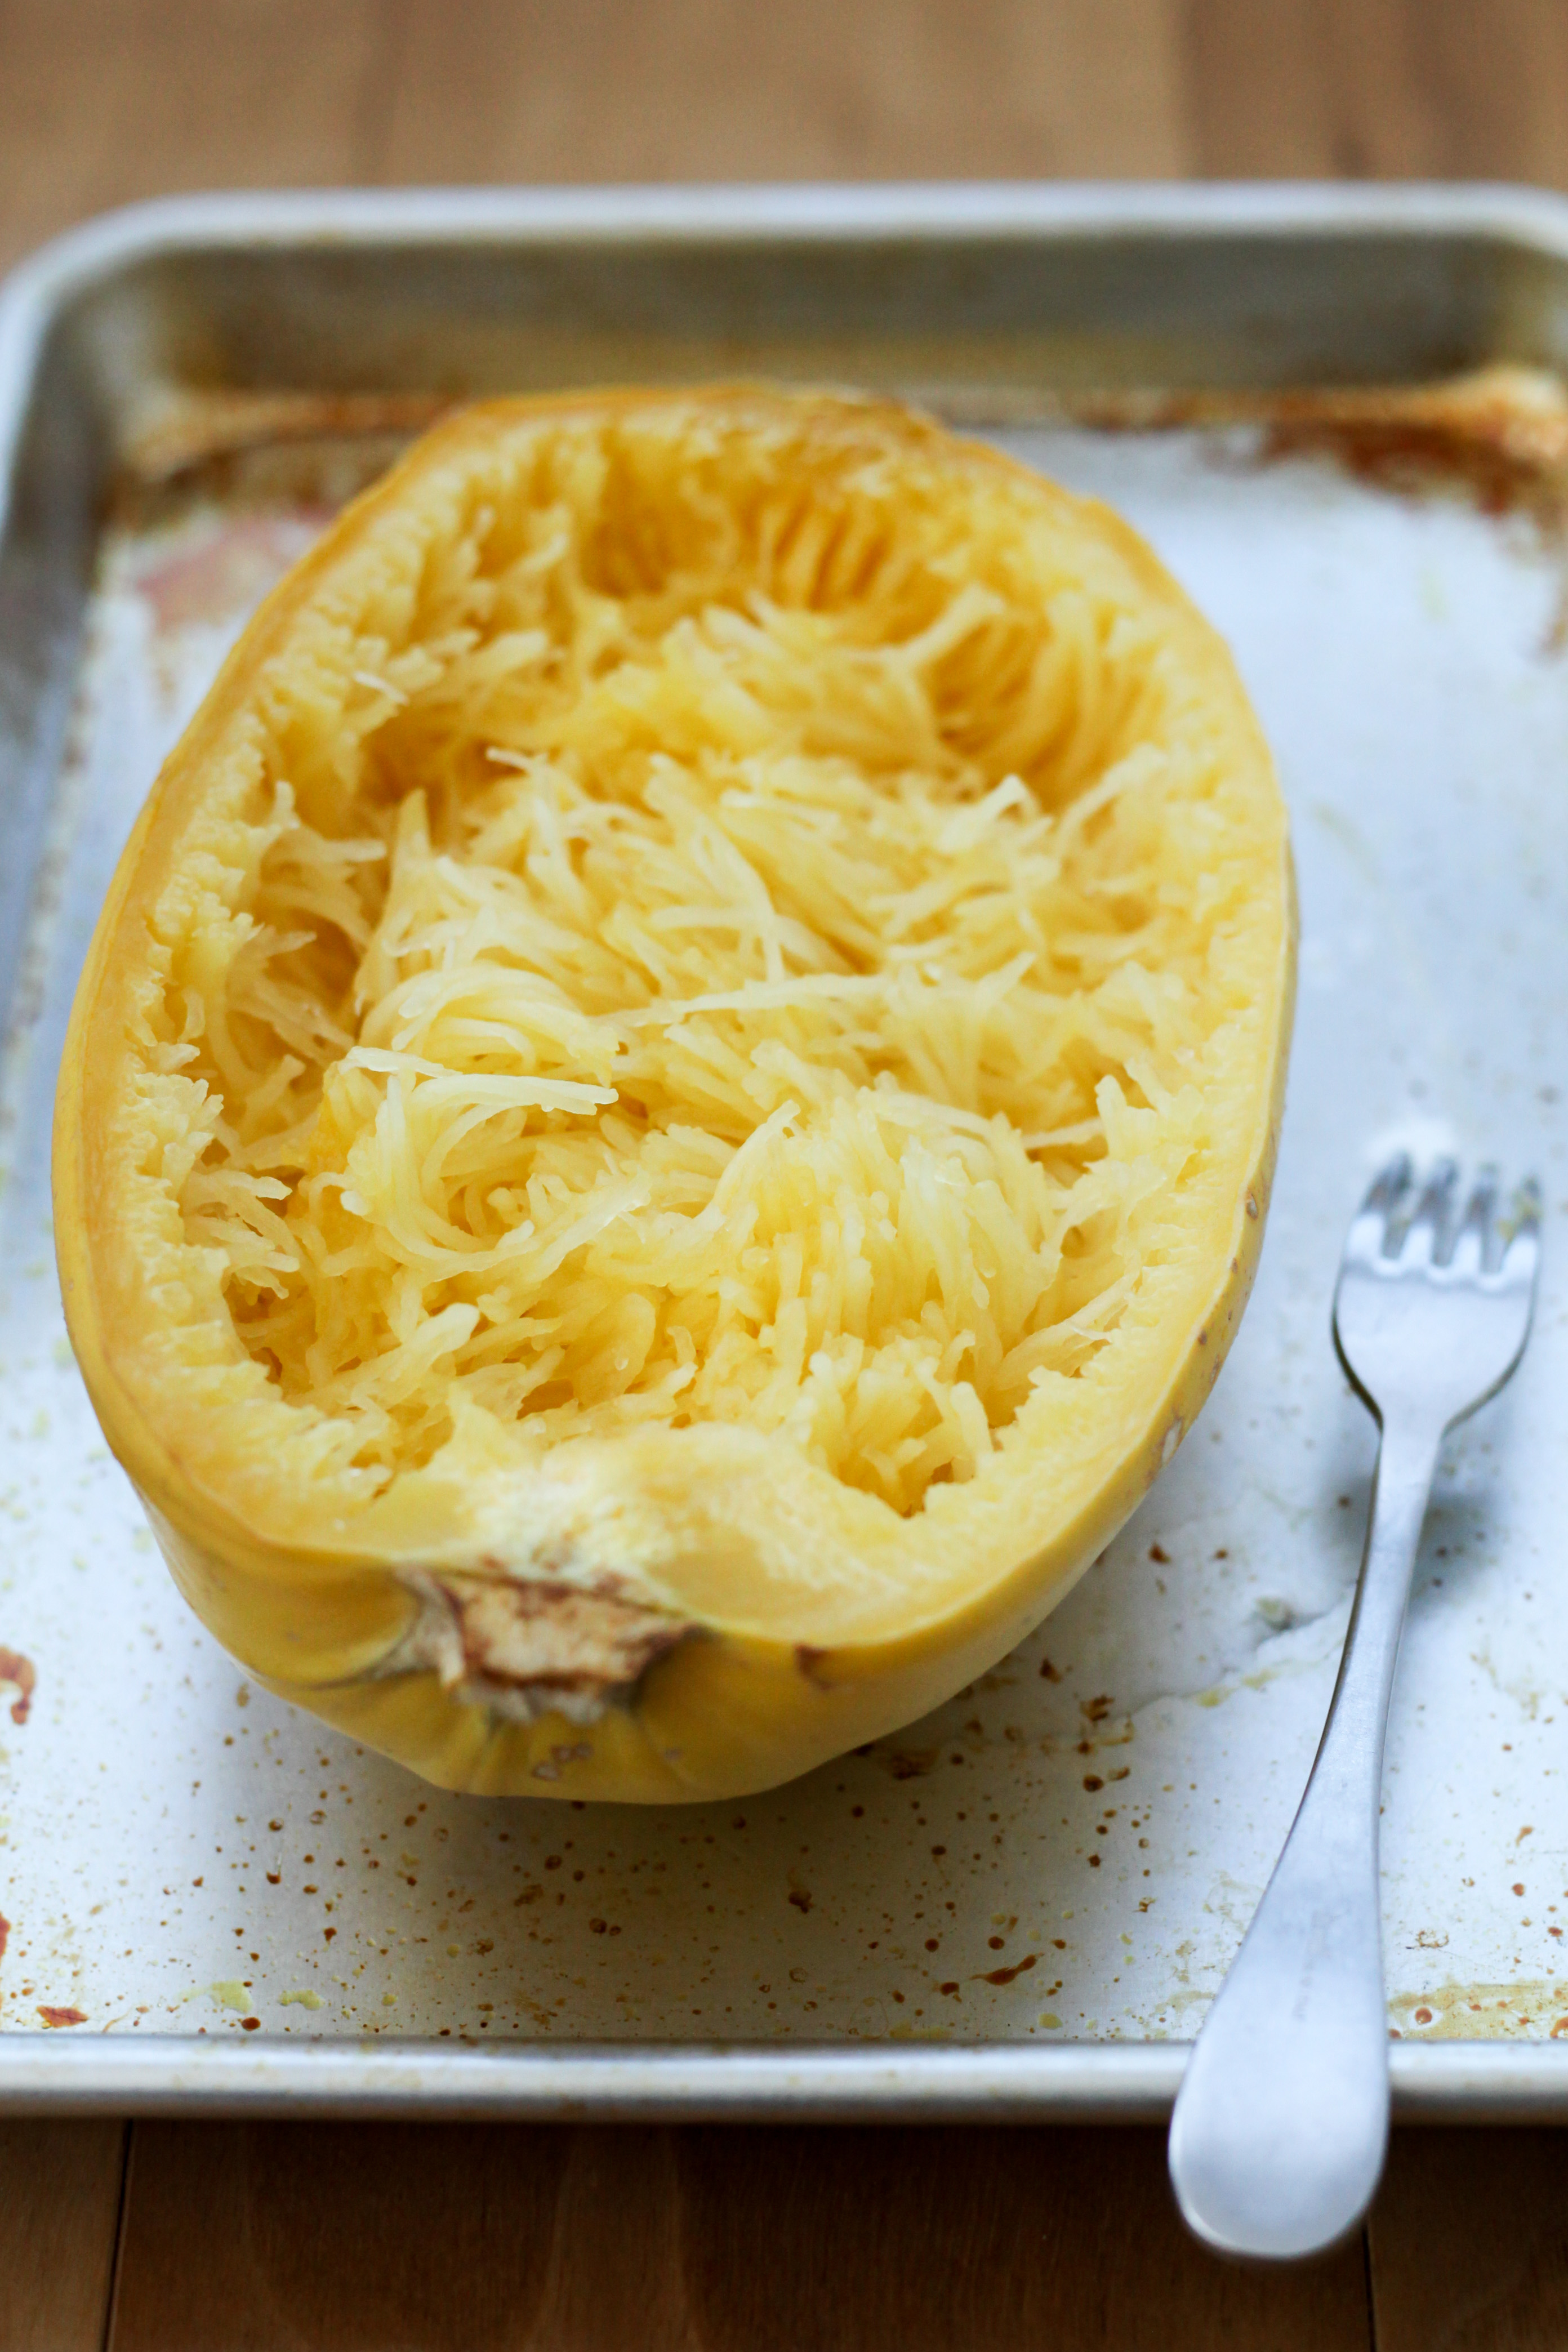 Scooping out spaghetti squash flesh